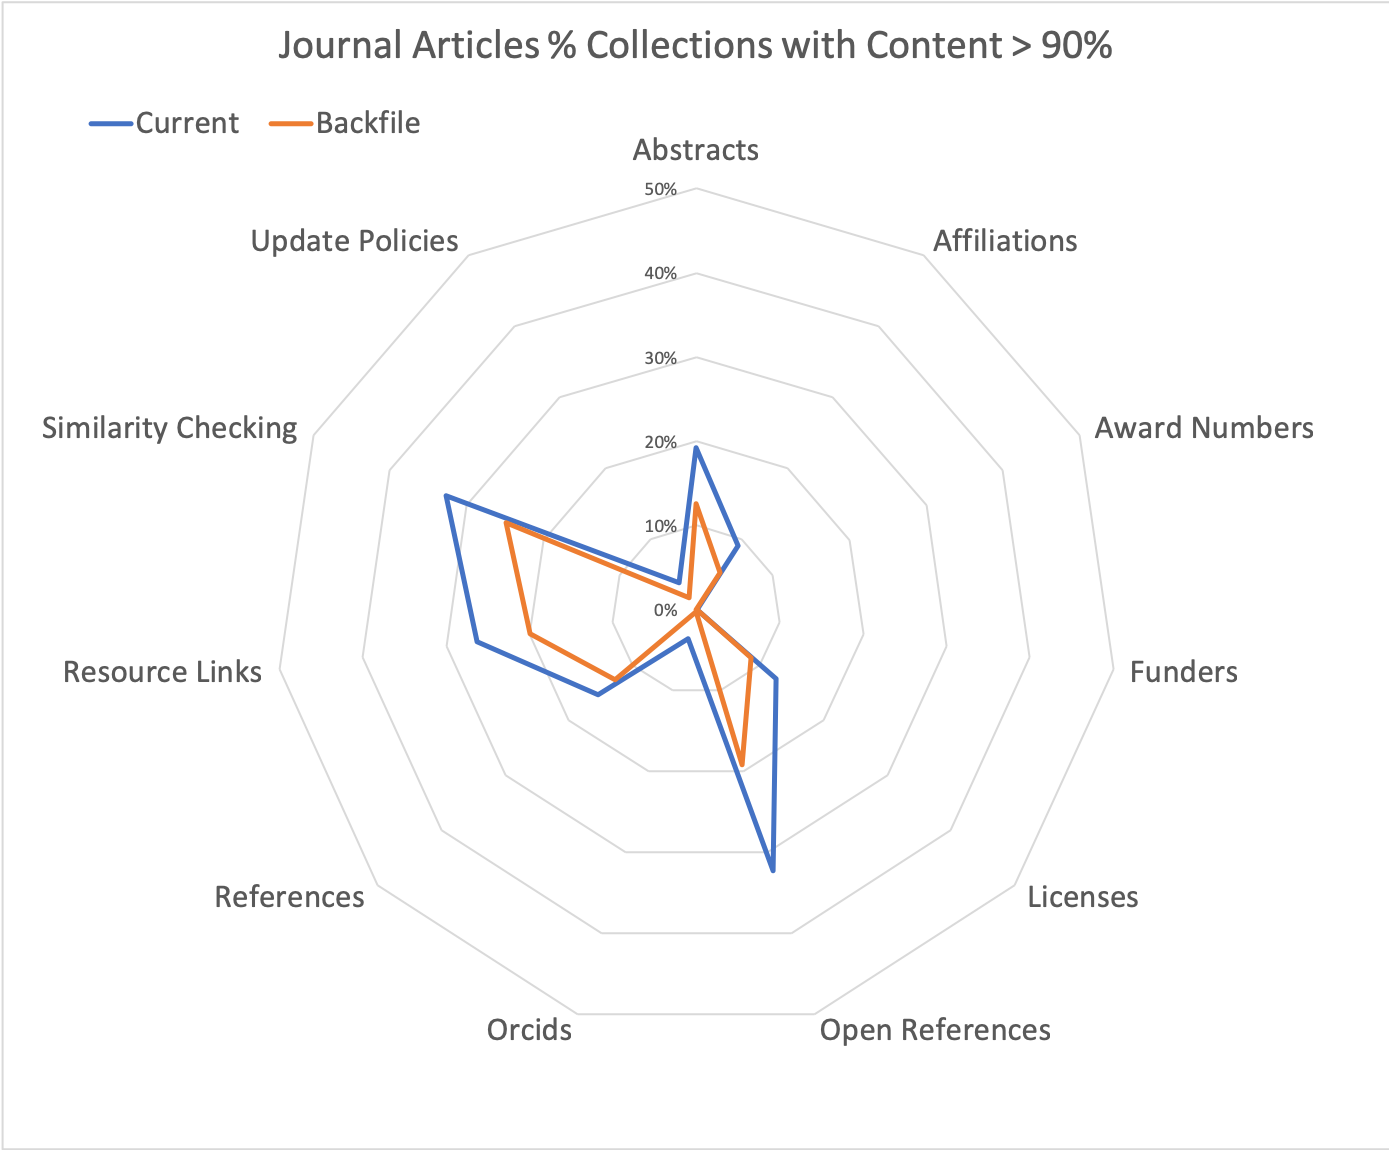 The % of CrossRef collections that are almost complete (90+%) during the backfile (orange) and current (blue) time periods. The % of Open References shows the largest increase (13%).